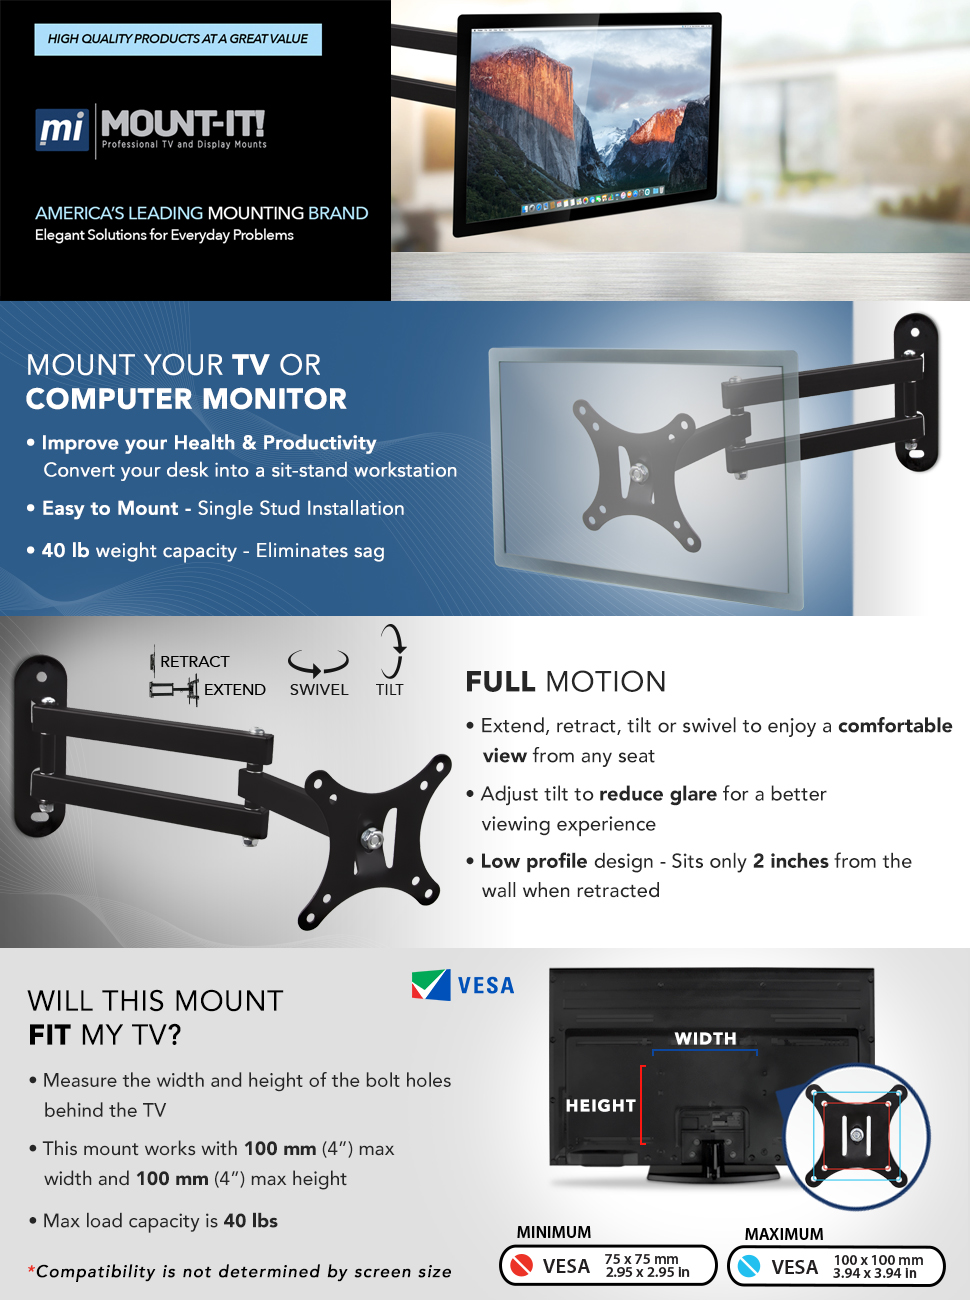 Single stud tv wall mount - Mount It Computer Monitor And Tv Wall Mount Full Motion Bracket For Small To Medium Size Televisions